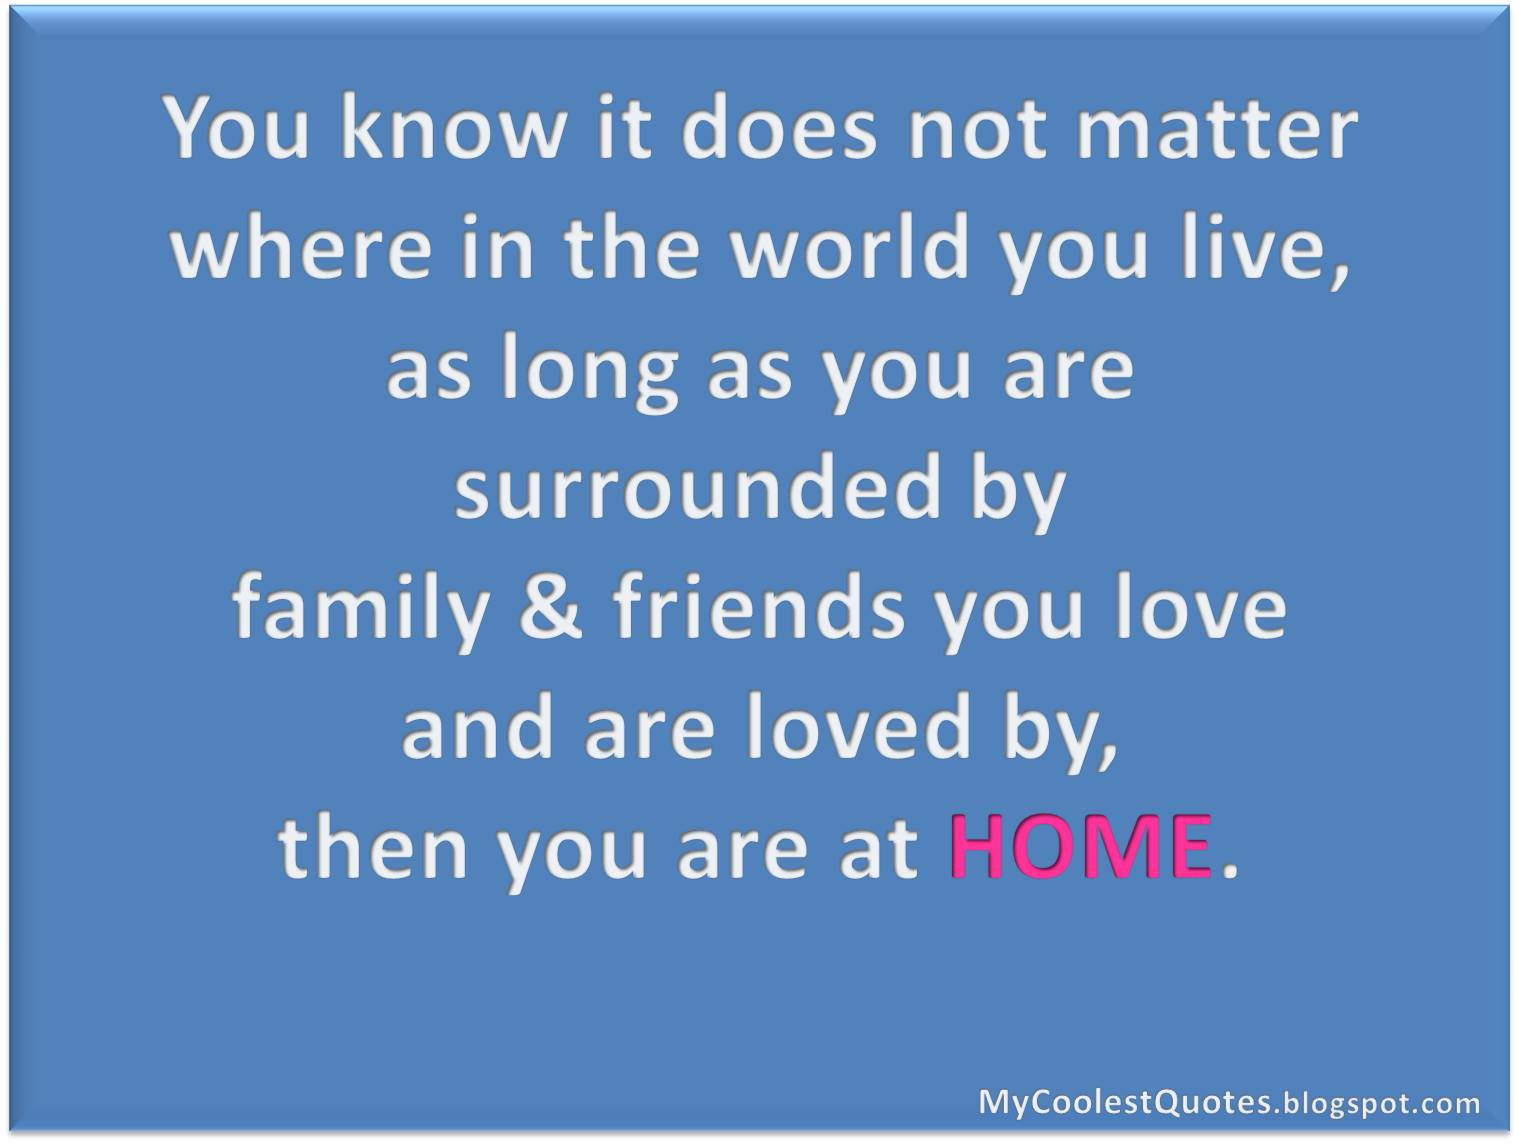 Quotes About Friends And Family  07 17 14